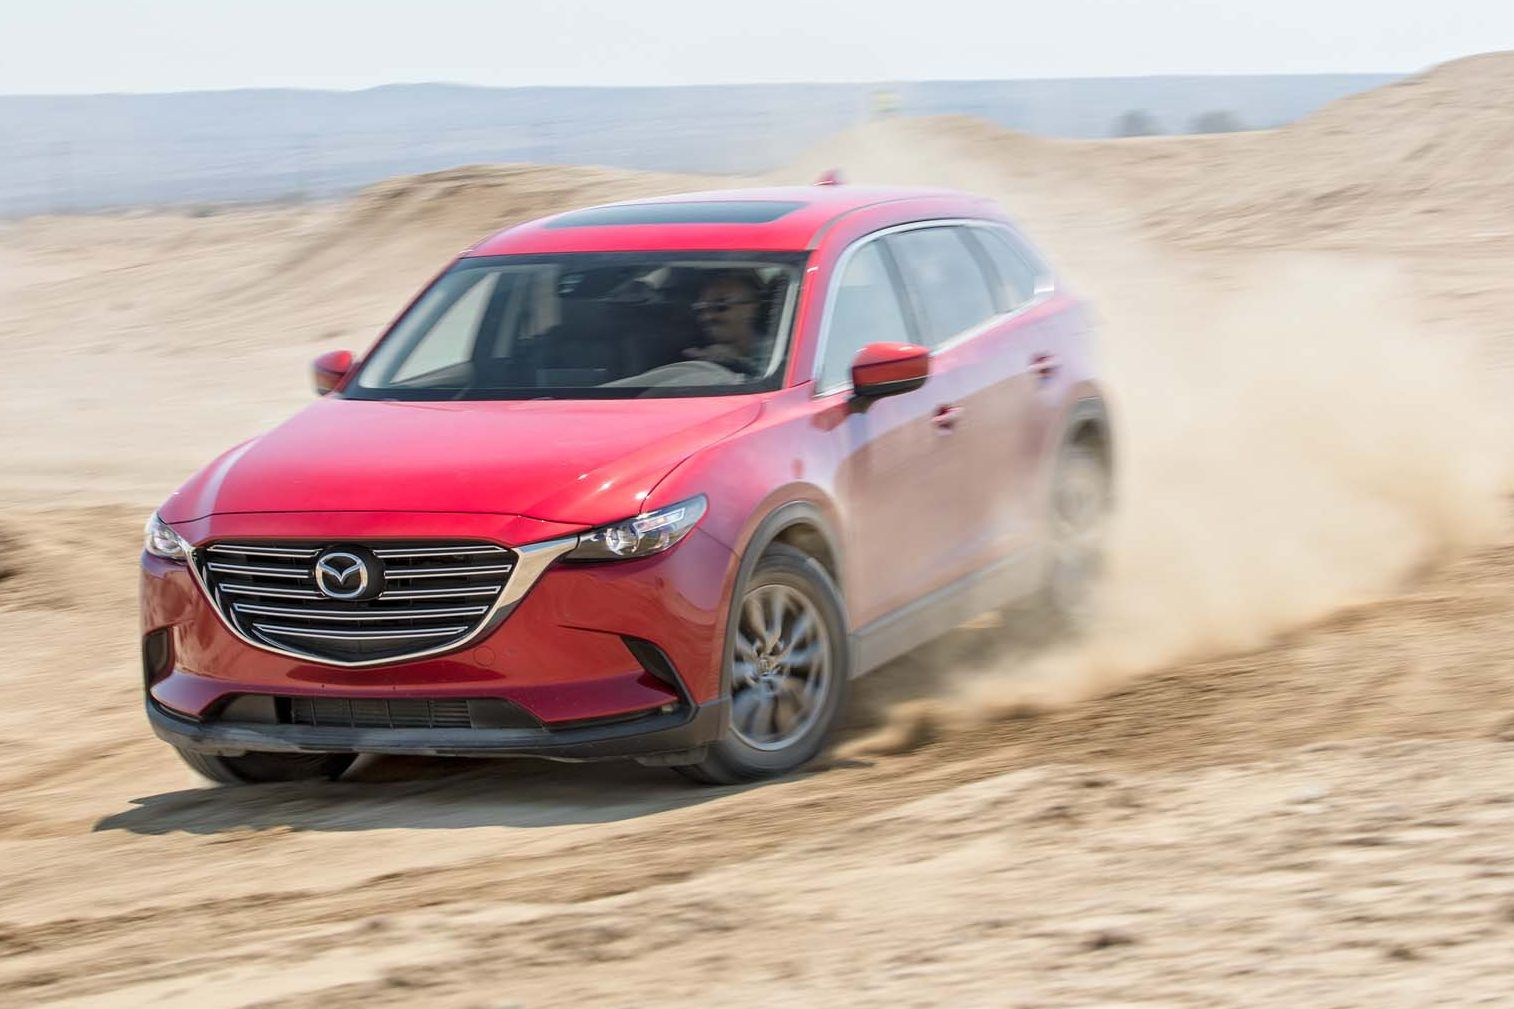 2016 Mazda Cx 9 Touring Fwd First Test Review Avant More Traction Mazda Cx 9 Mazda Test Review